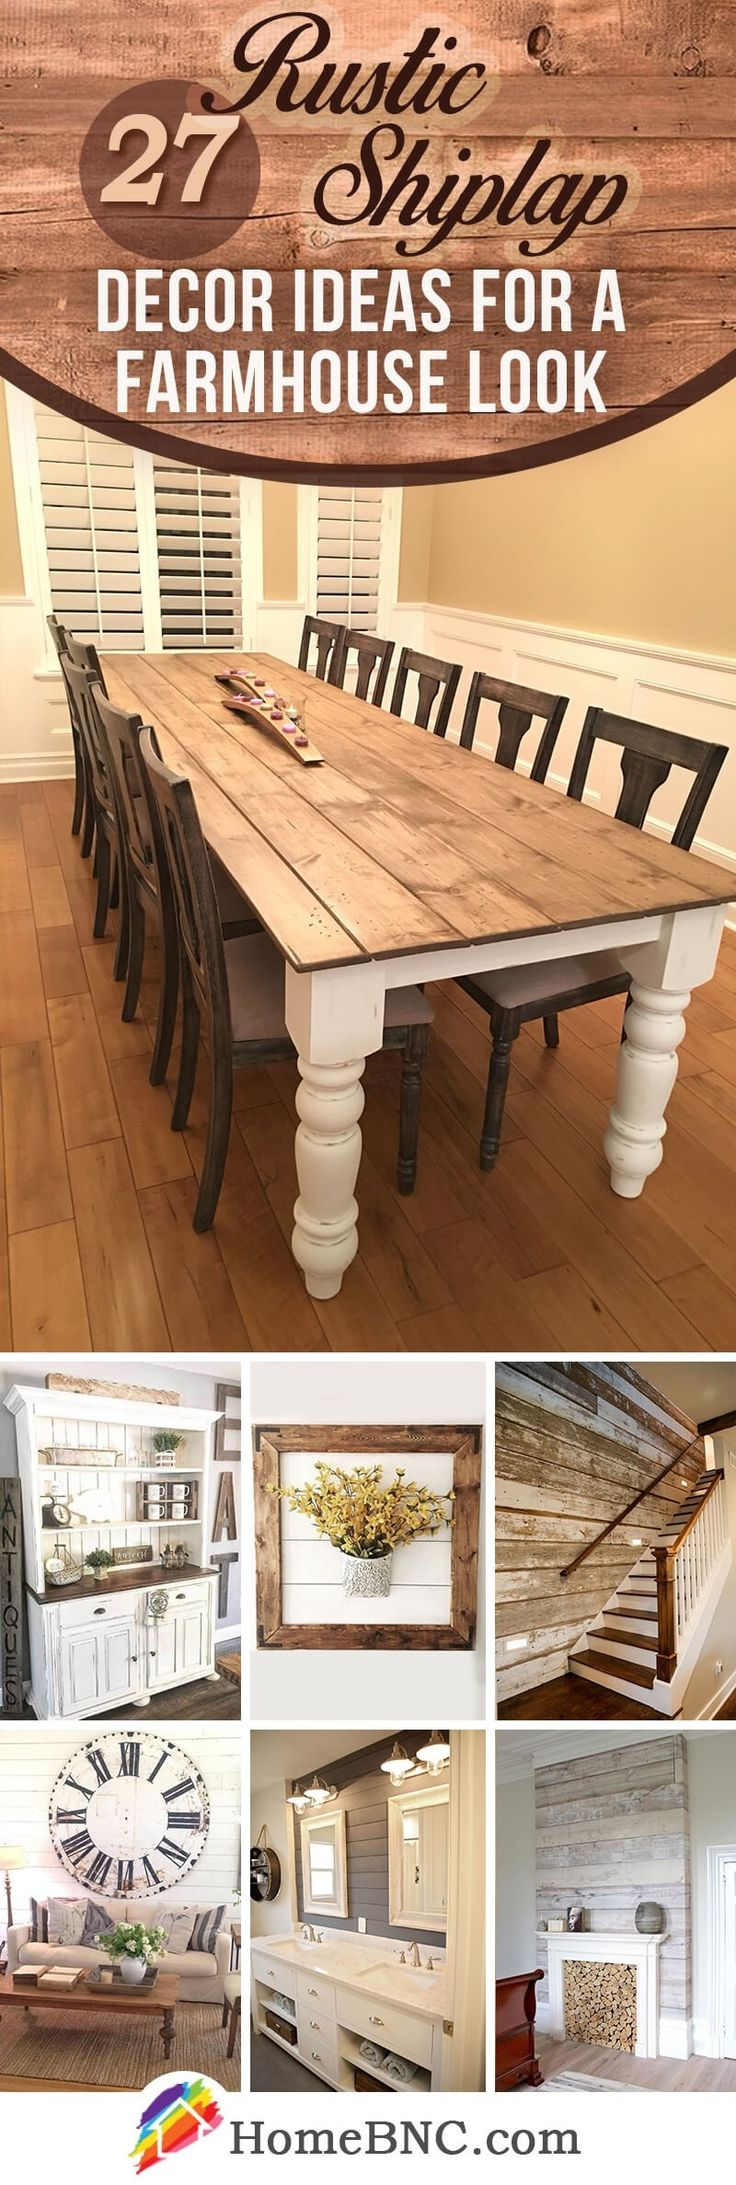 best ideas for the home images on pinterest house blueprints